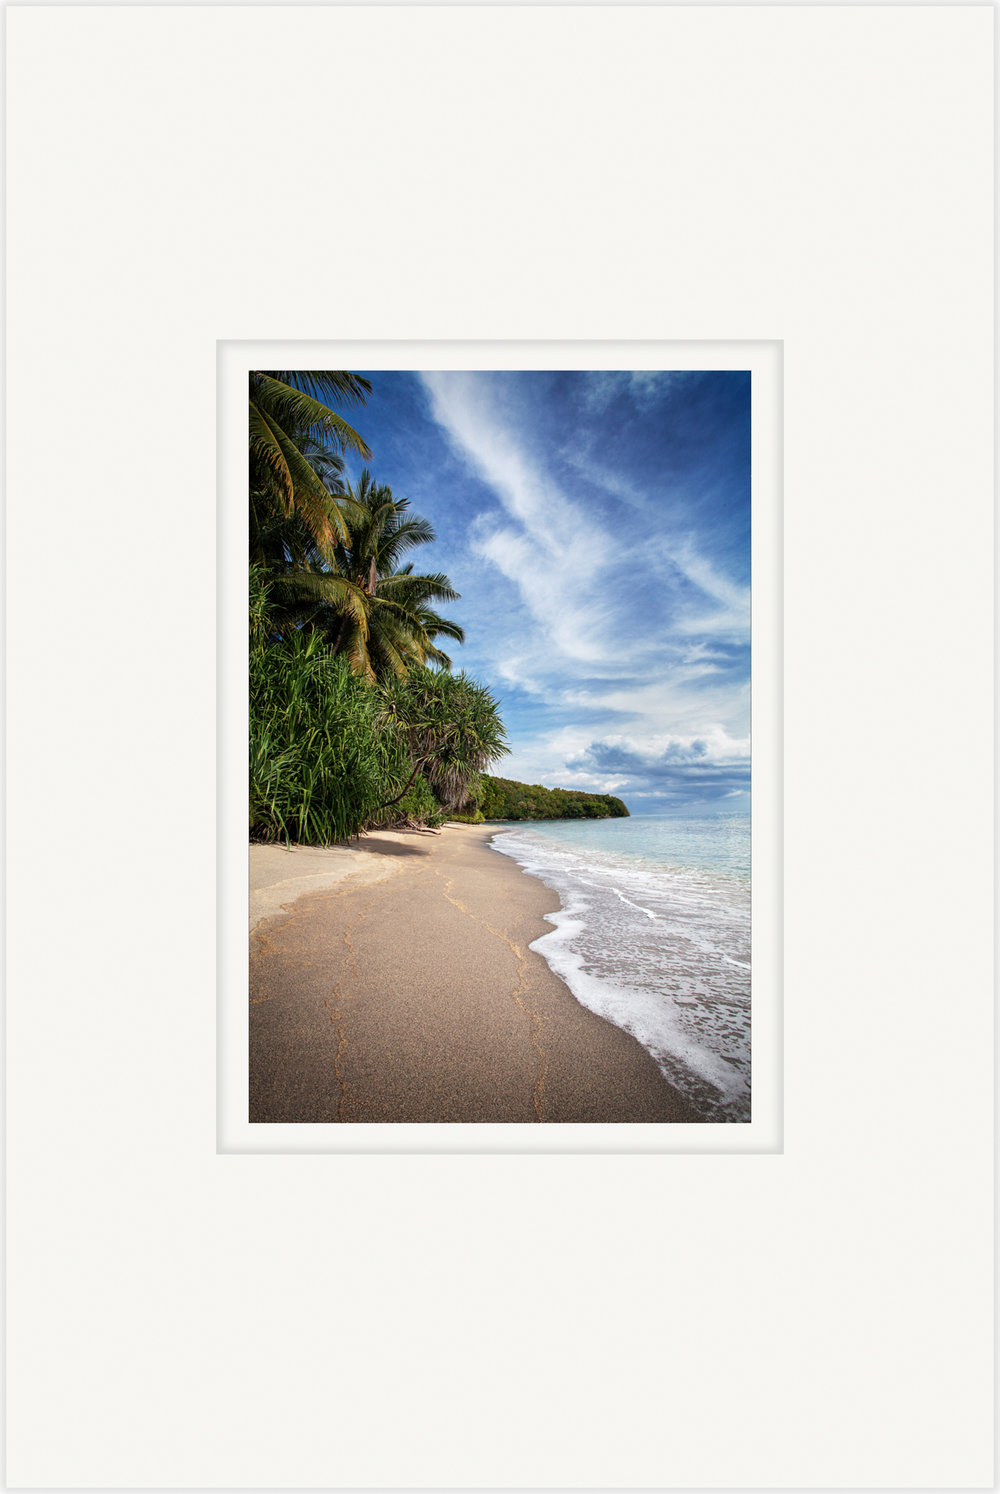 Untitled (Kecinan Beach)   10cm x 15cm Photo Paper Limited Edition of 99   IDR 249,000